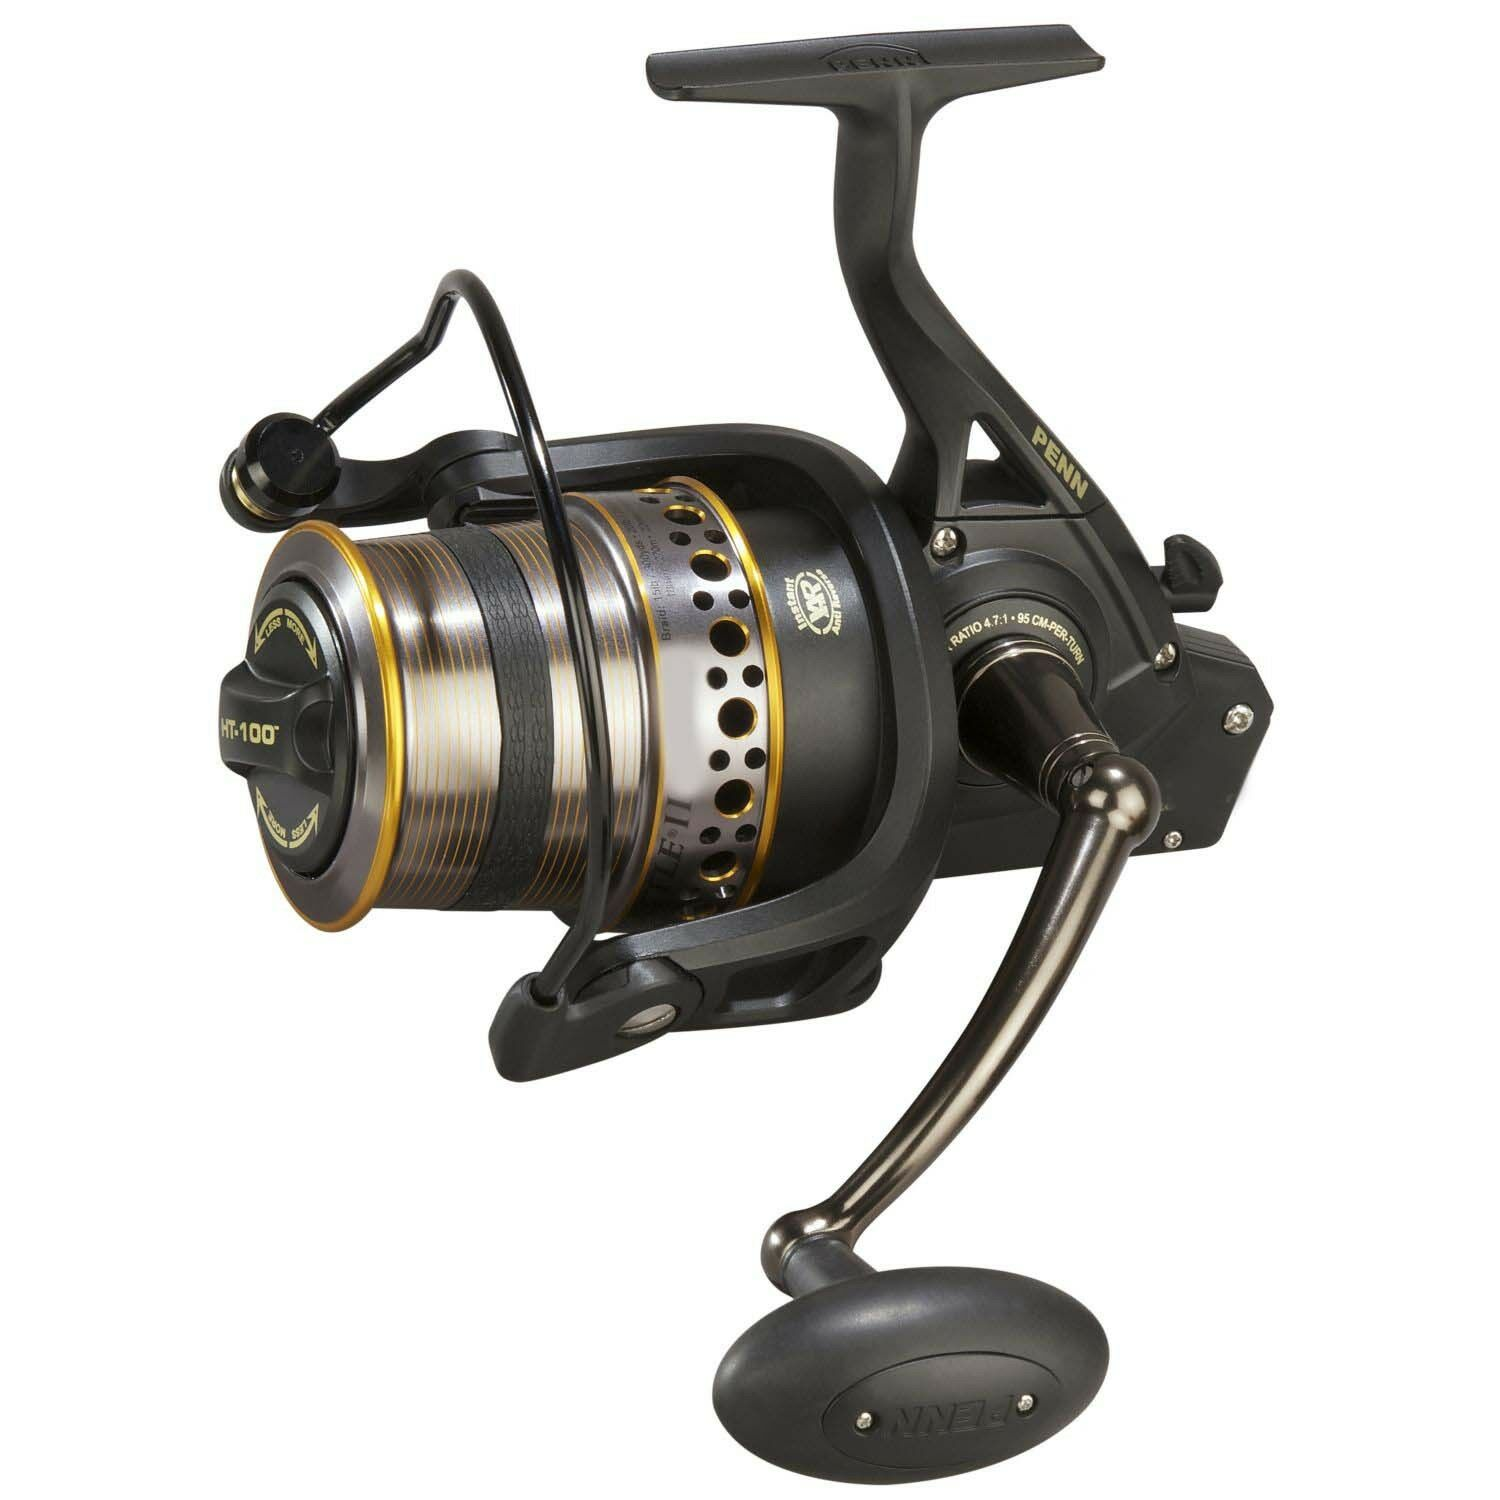 Penn Battle II 8000 LC fixed fishing reel